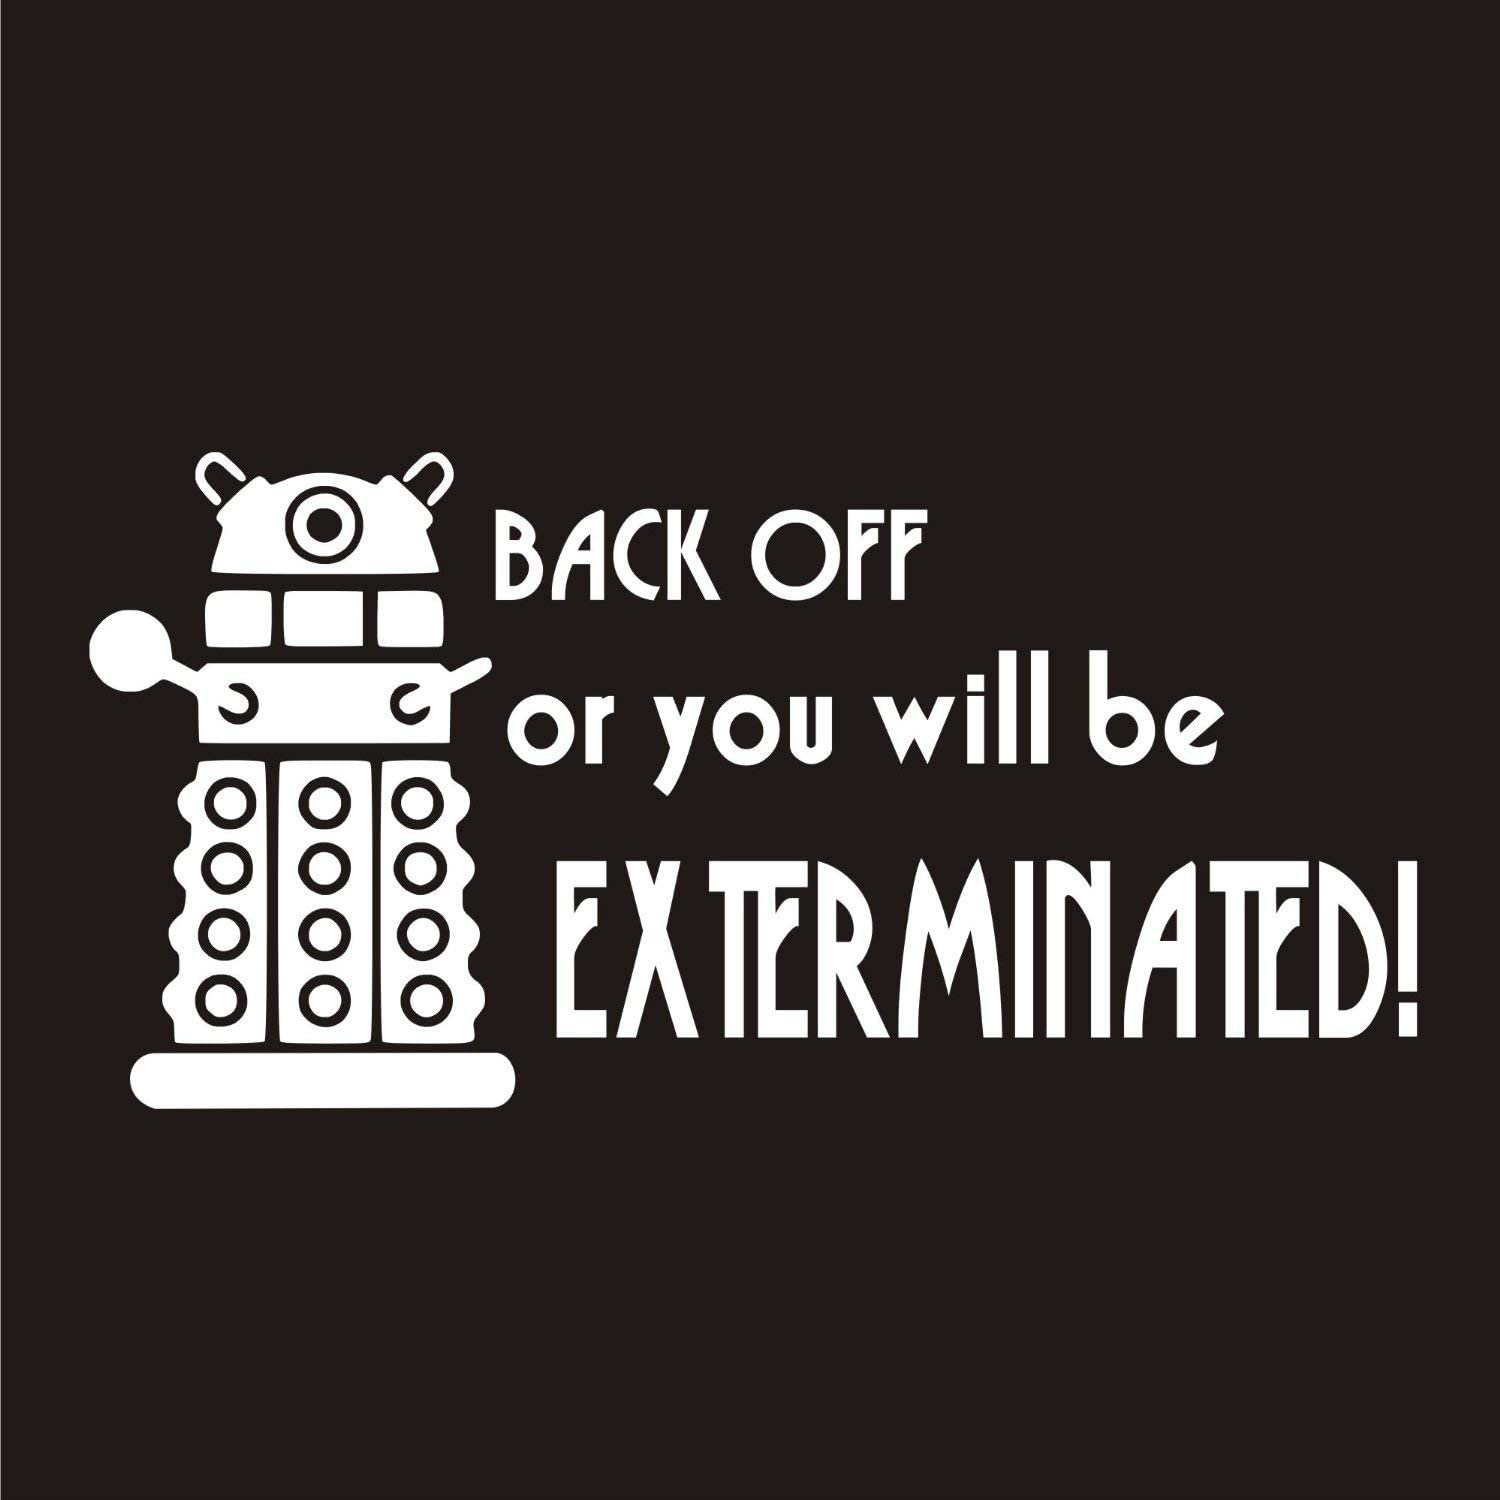 Supersticki Doctor Who Dalek Back Off Or You Will Be Exterminated Decal Sticker Car Home Laptop Dye Cut By Boston Deals Ca 20cm Aufkleber Autoaufkleber Wandtattoo Auto